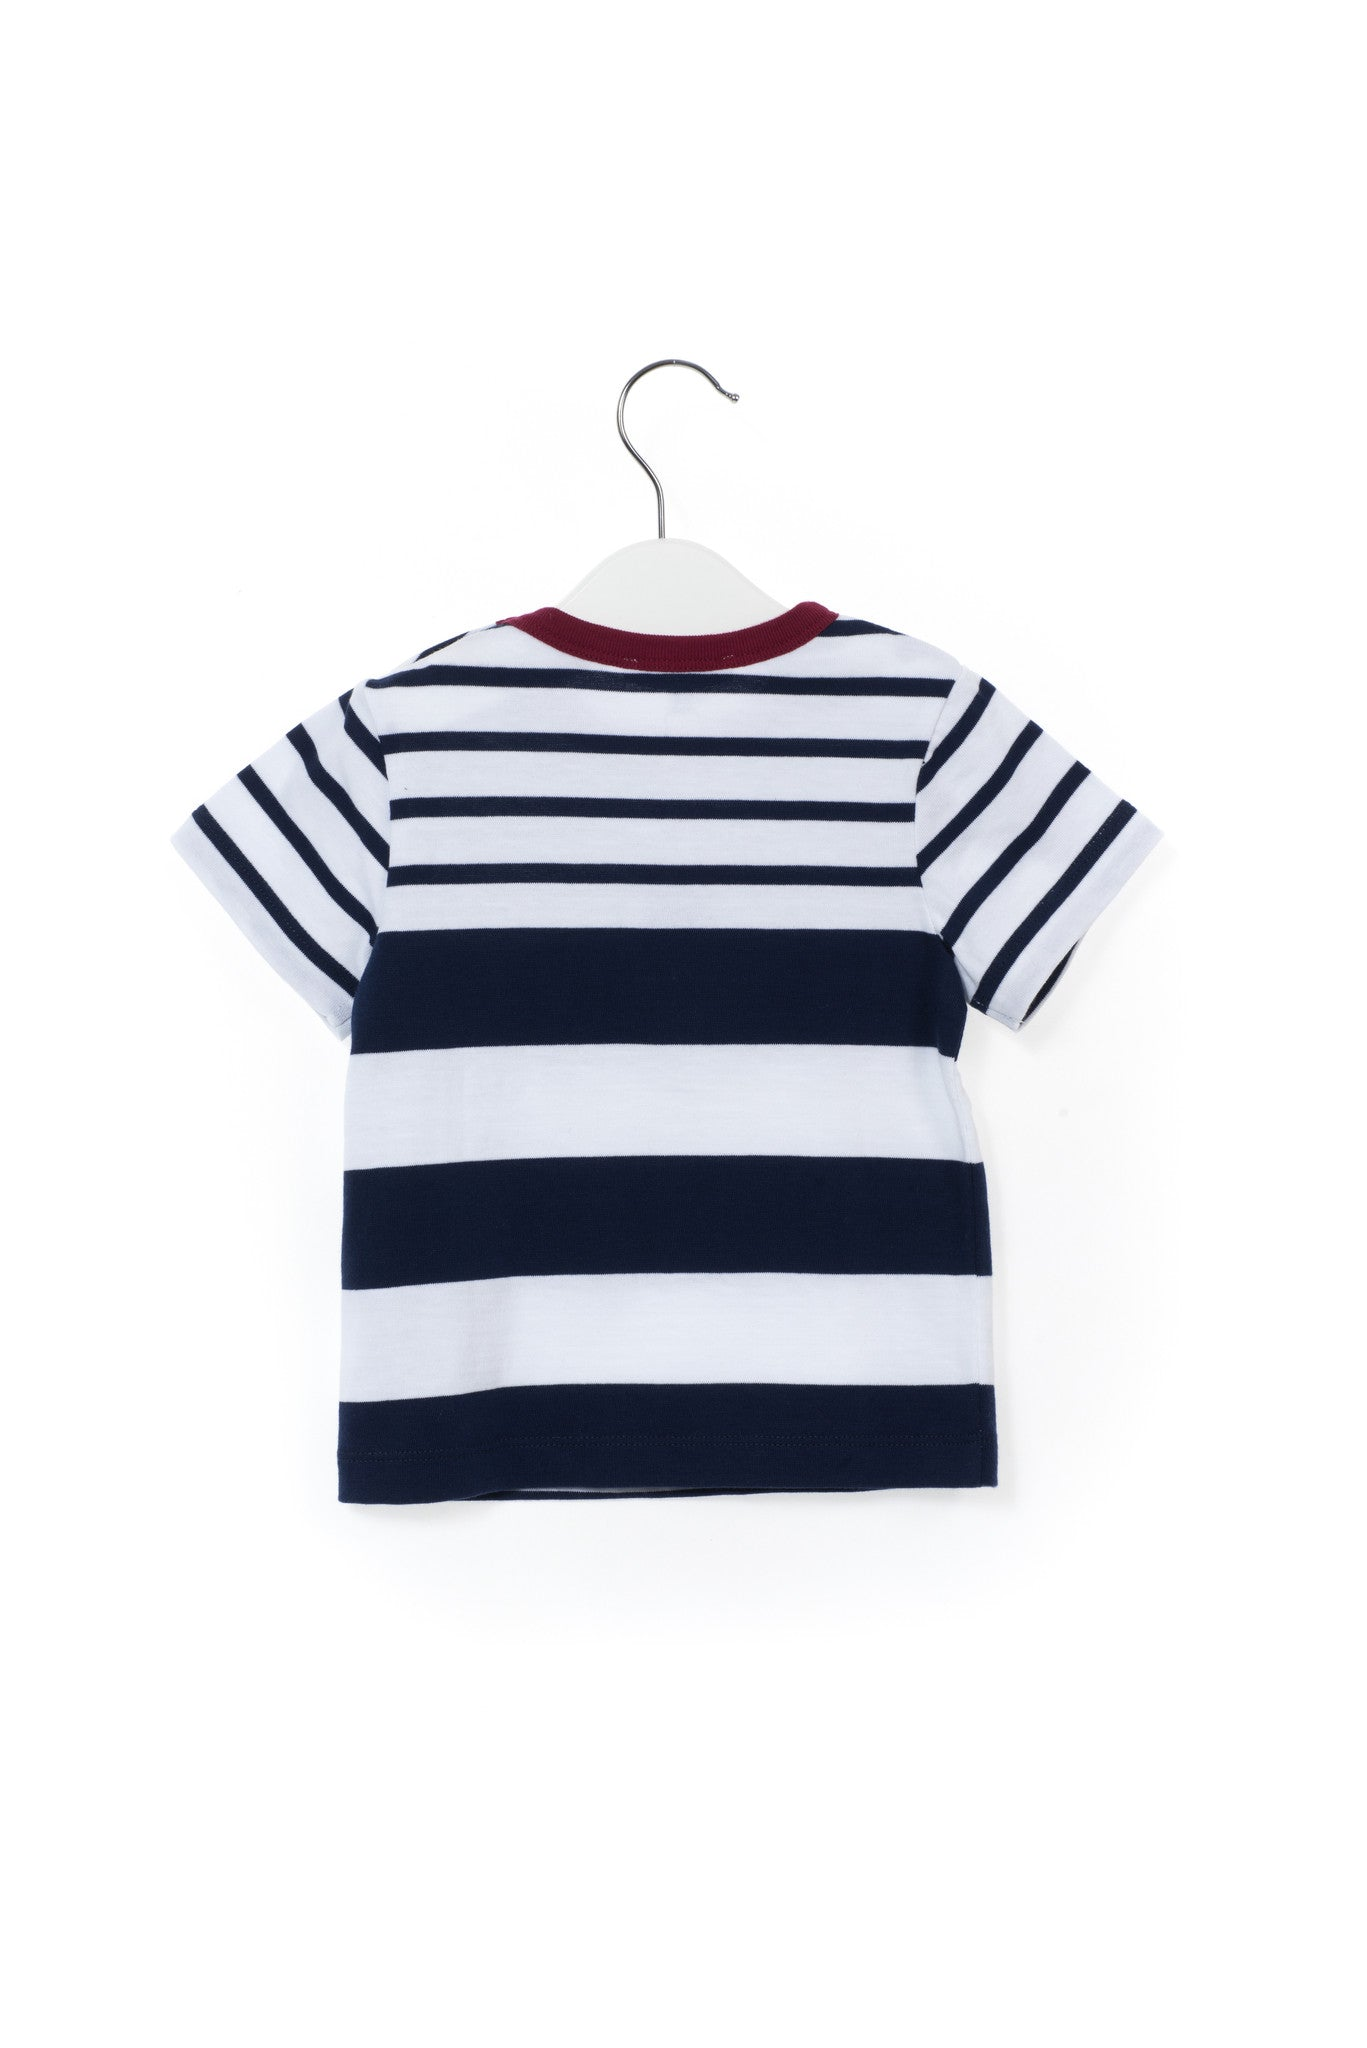 10001109 Jacadi Baby~T-Shirt 12-18M at Retykle